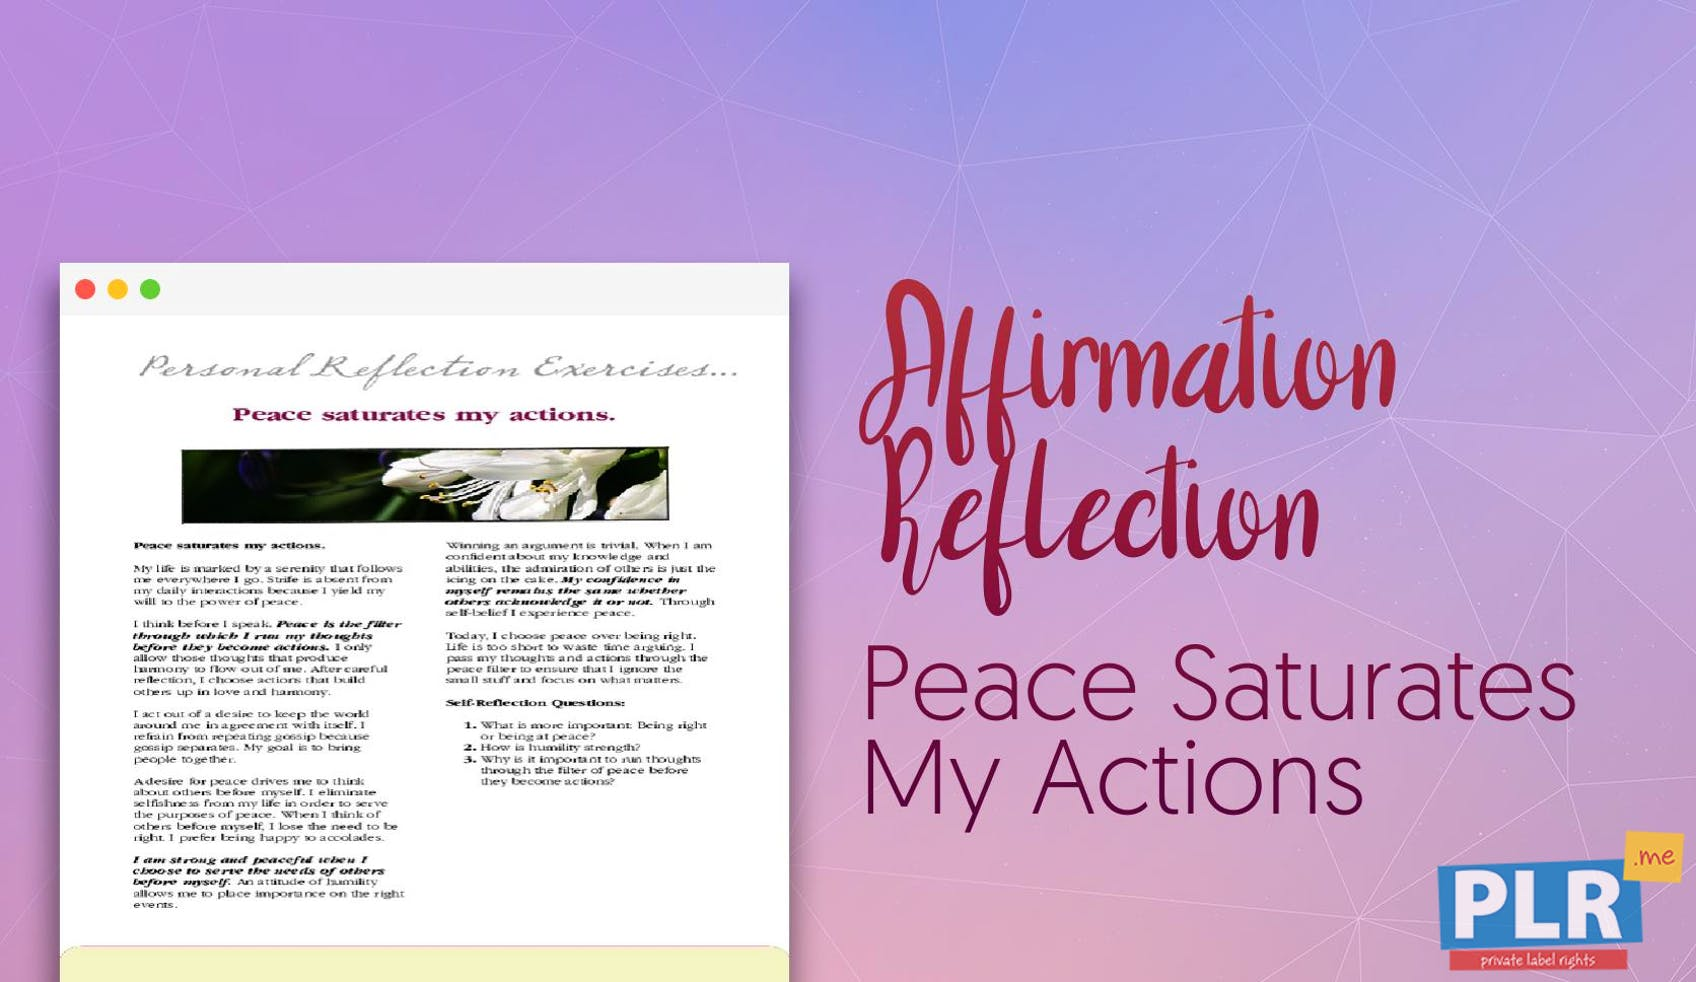 Peace Saturates My Actions